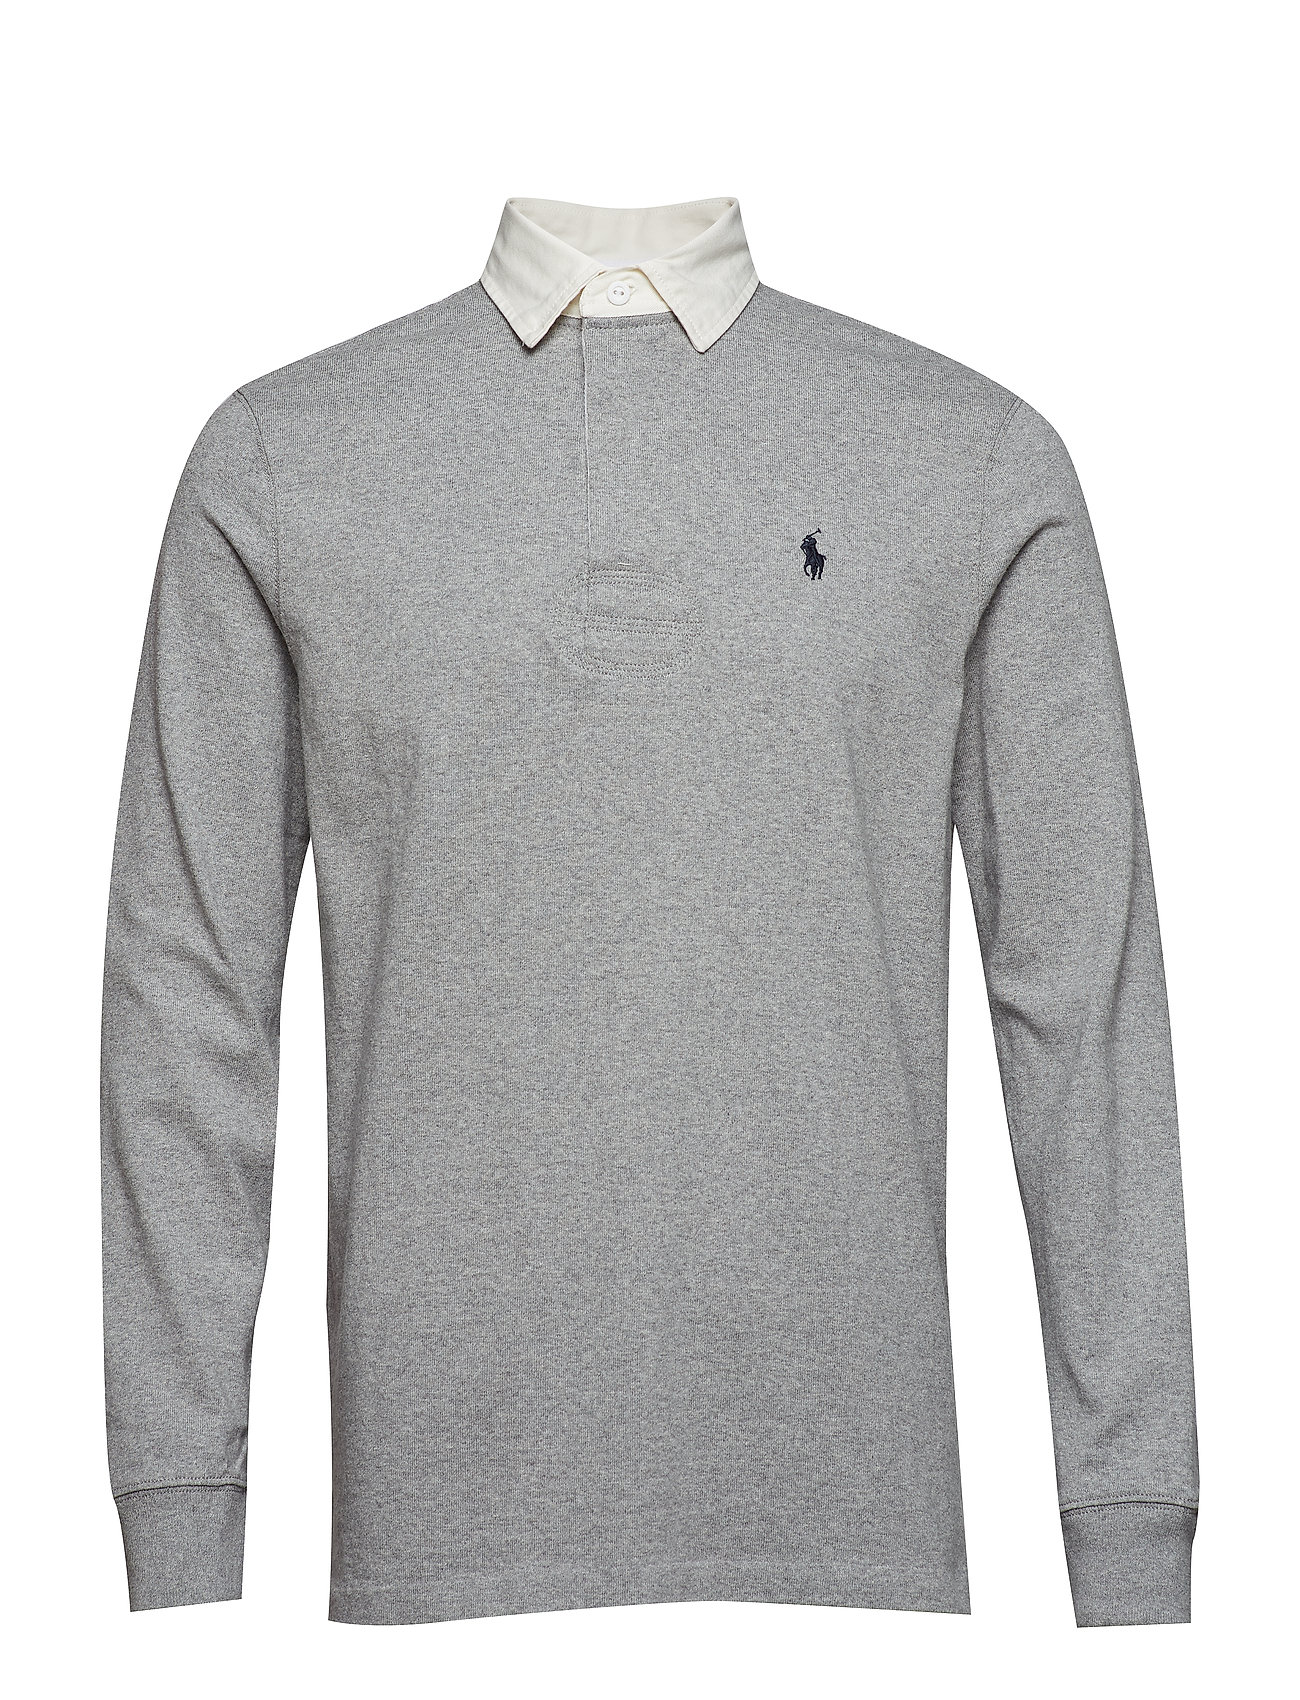 Polo Ralph Lauren The Iconic Rugby Shirt - LEAGUE HEATHER